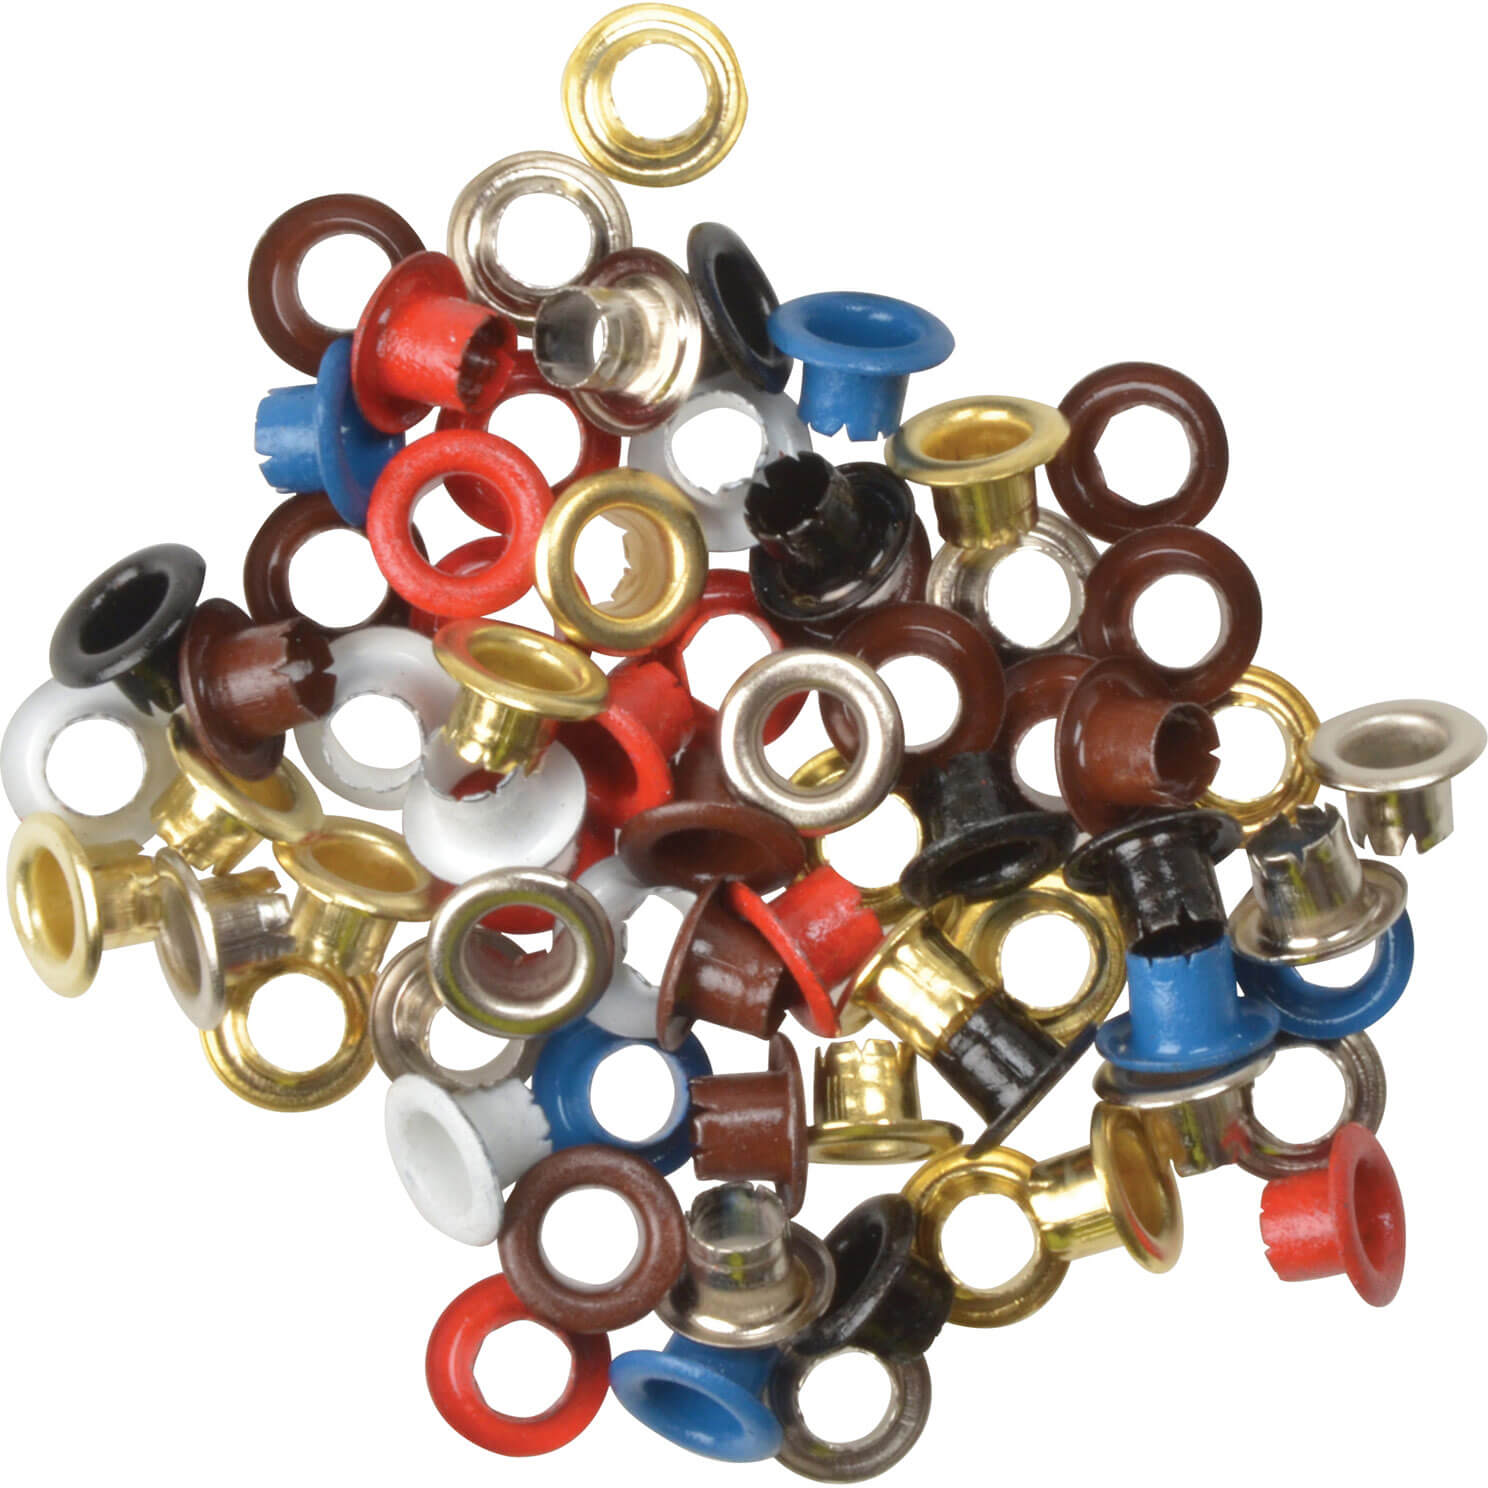 Image of Maun Eyelets 4mm Pack of 100